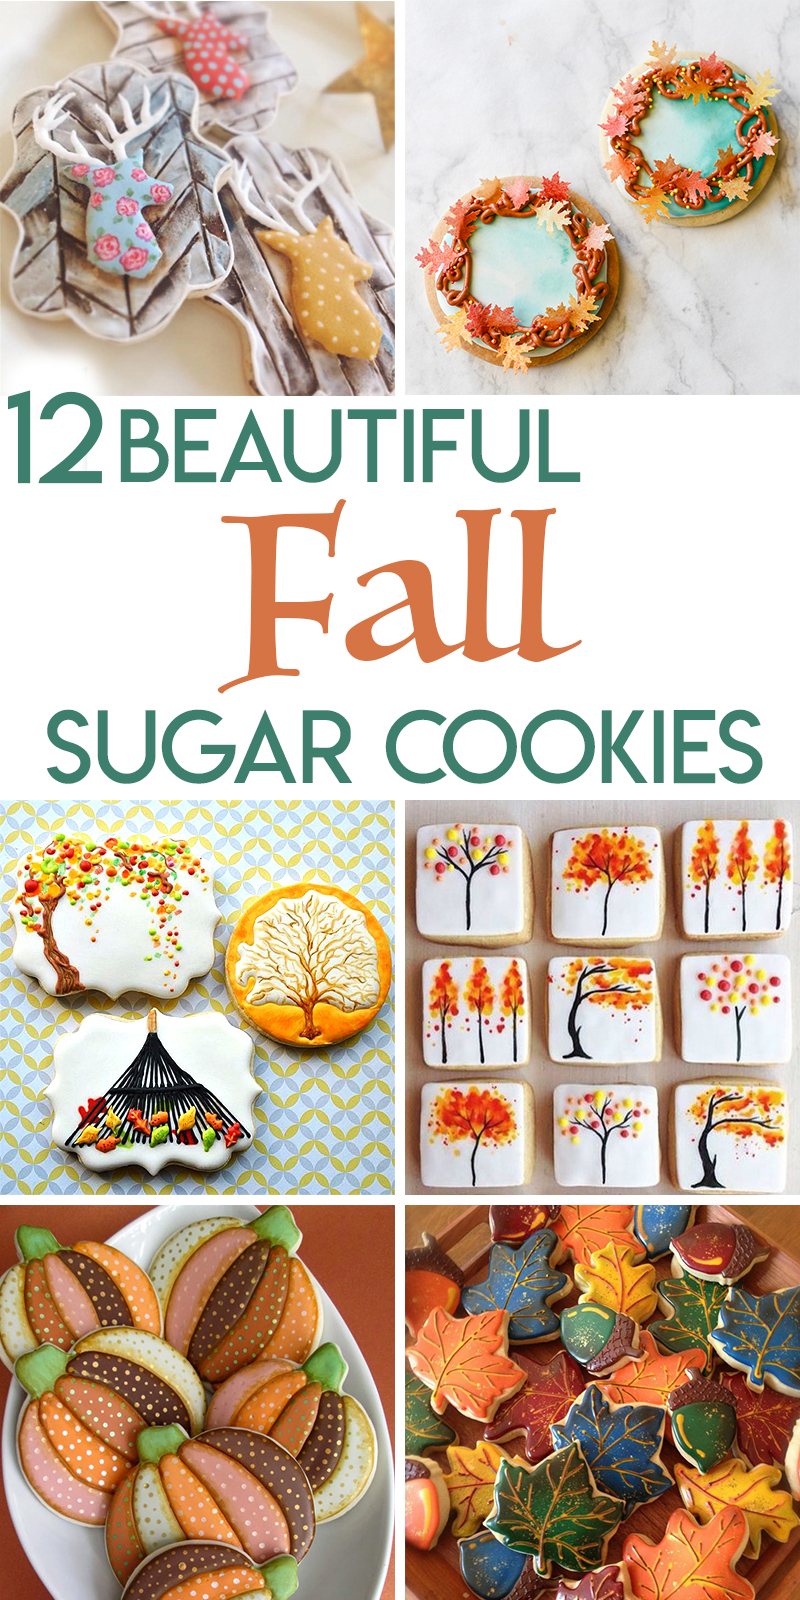 12 beautiful fall sugar cookies